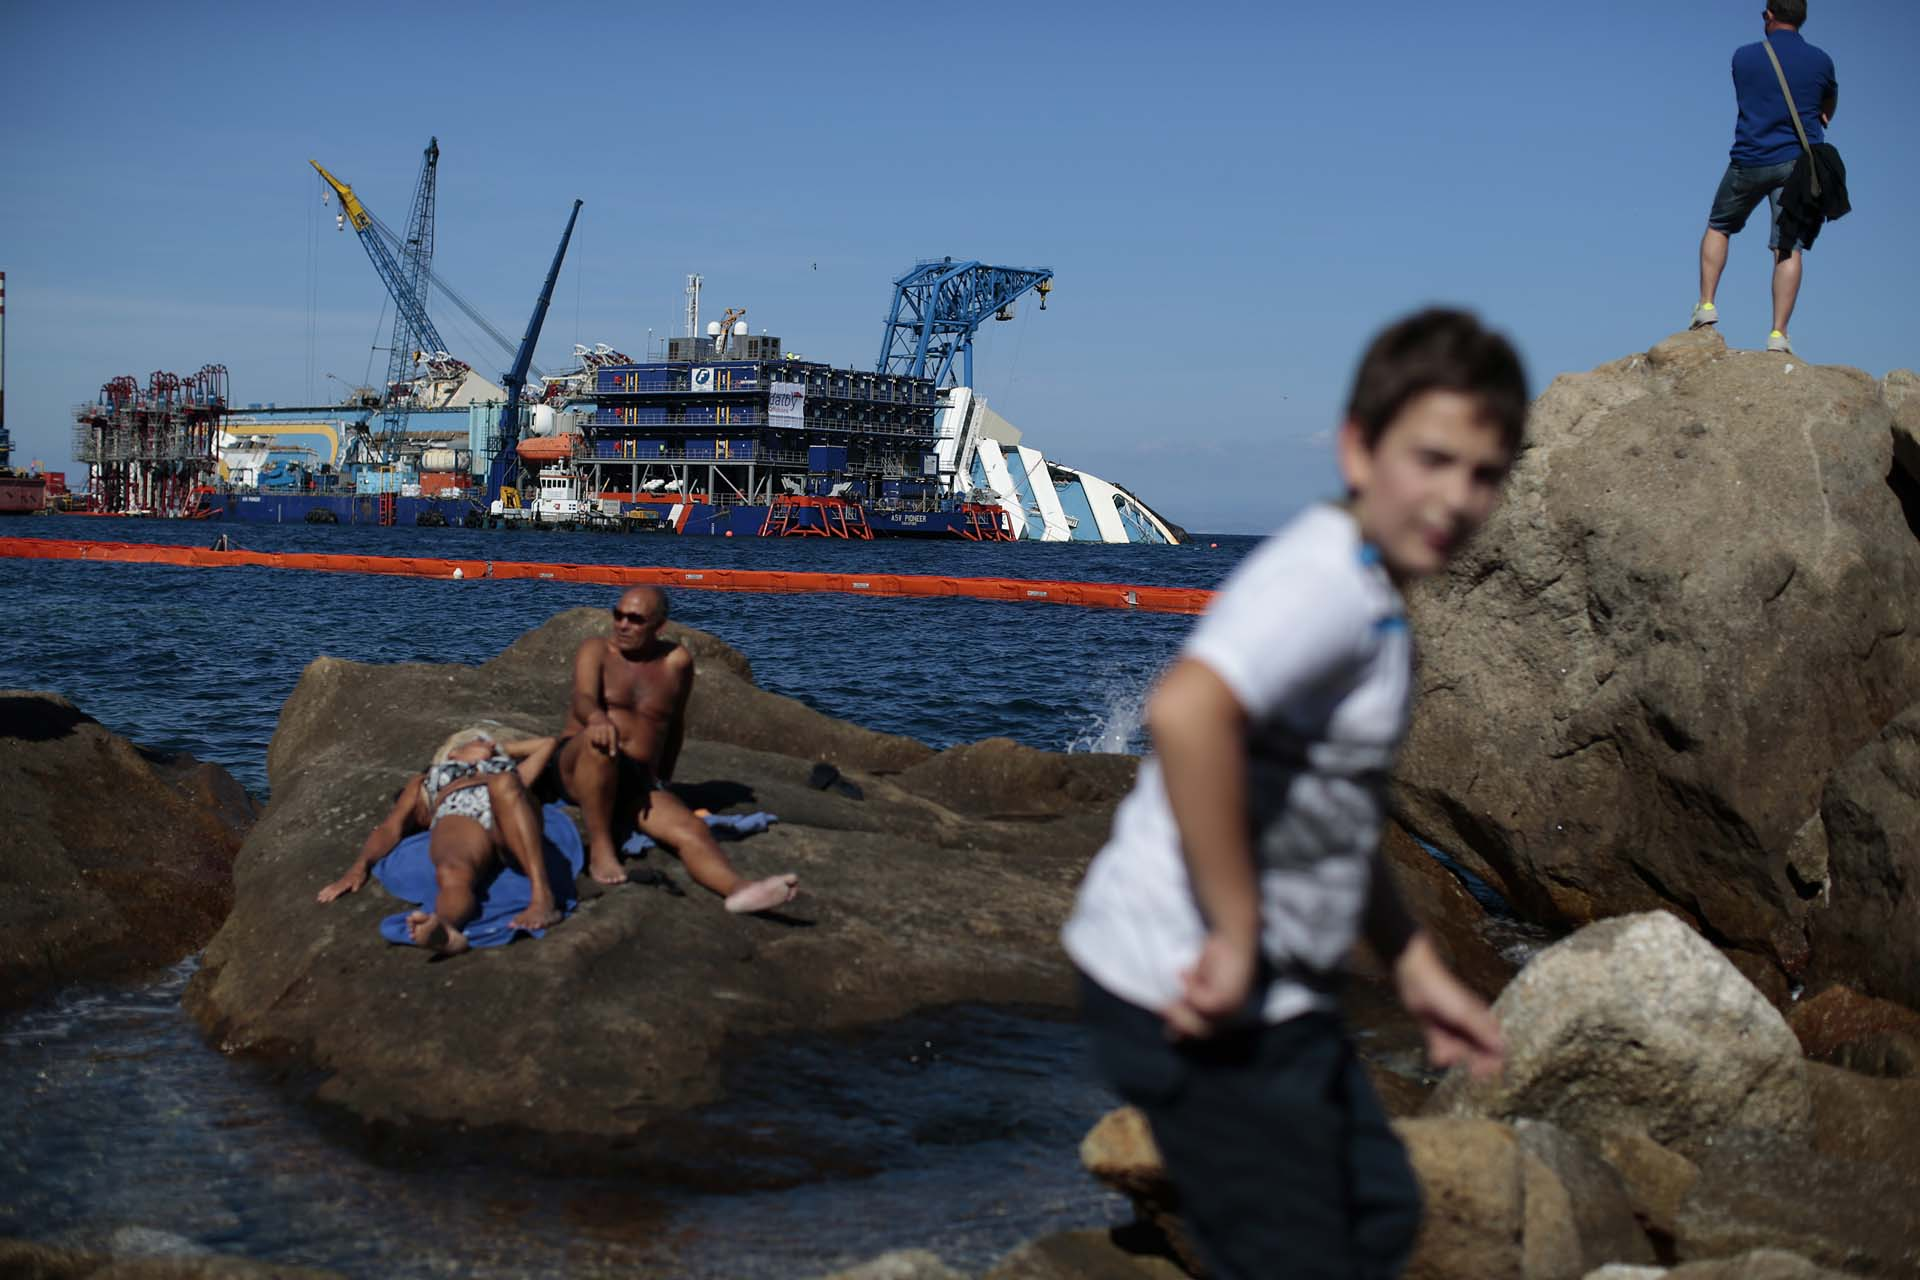 Giglio Island, September 14, 2013 REUTERS/Tony Gentile (ITALY)